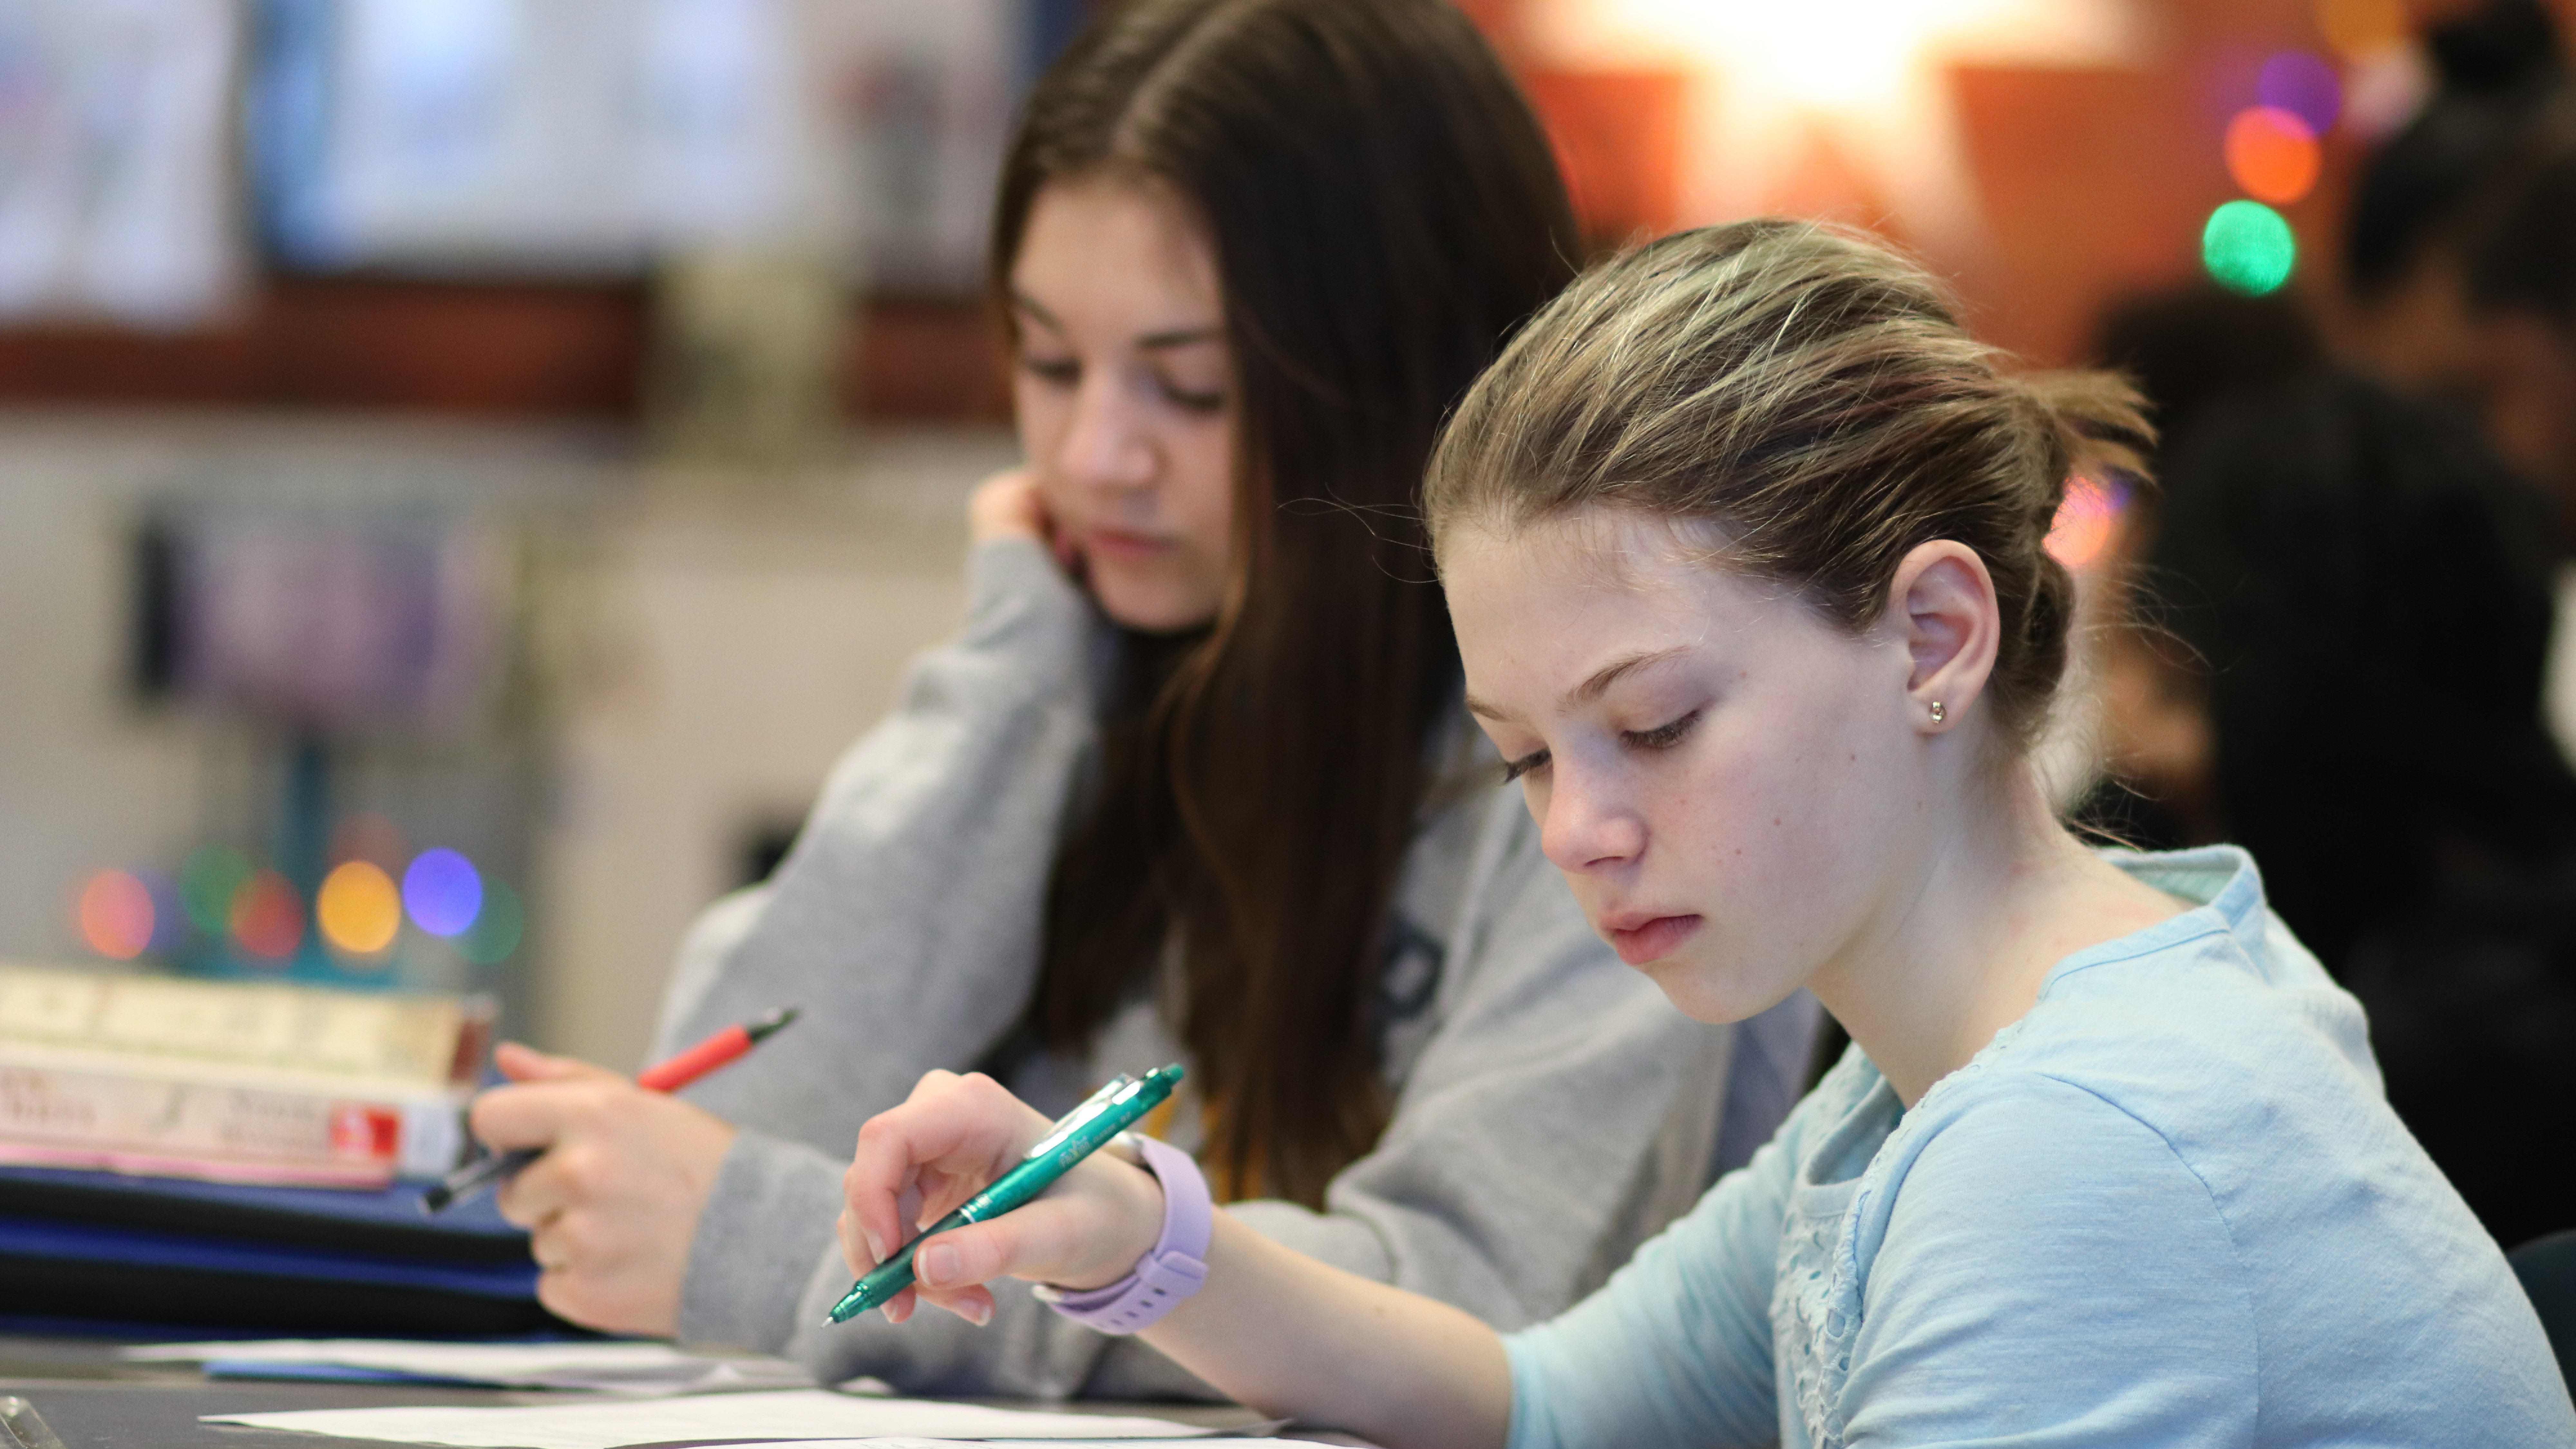 Students working at their desks.